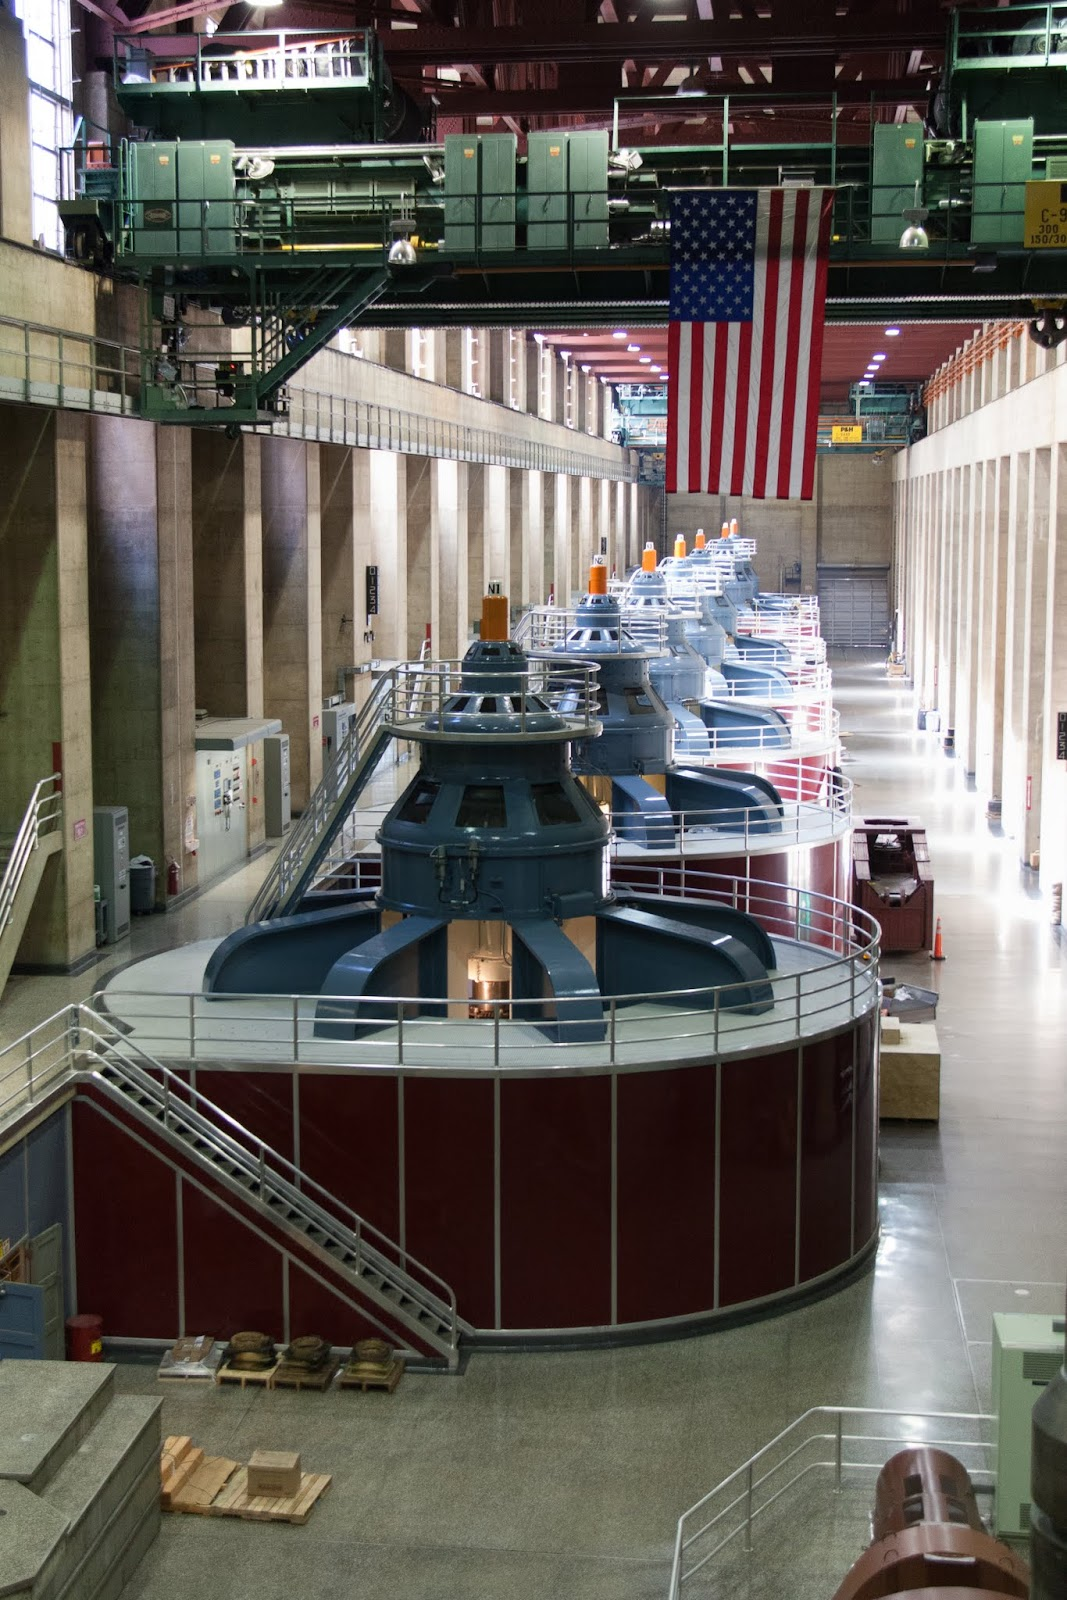 Inside the power station